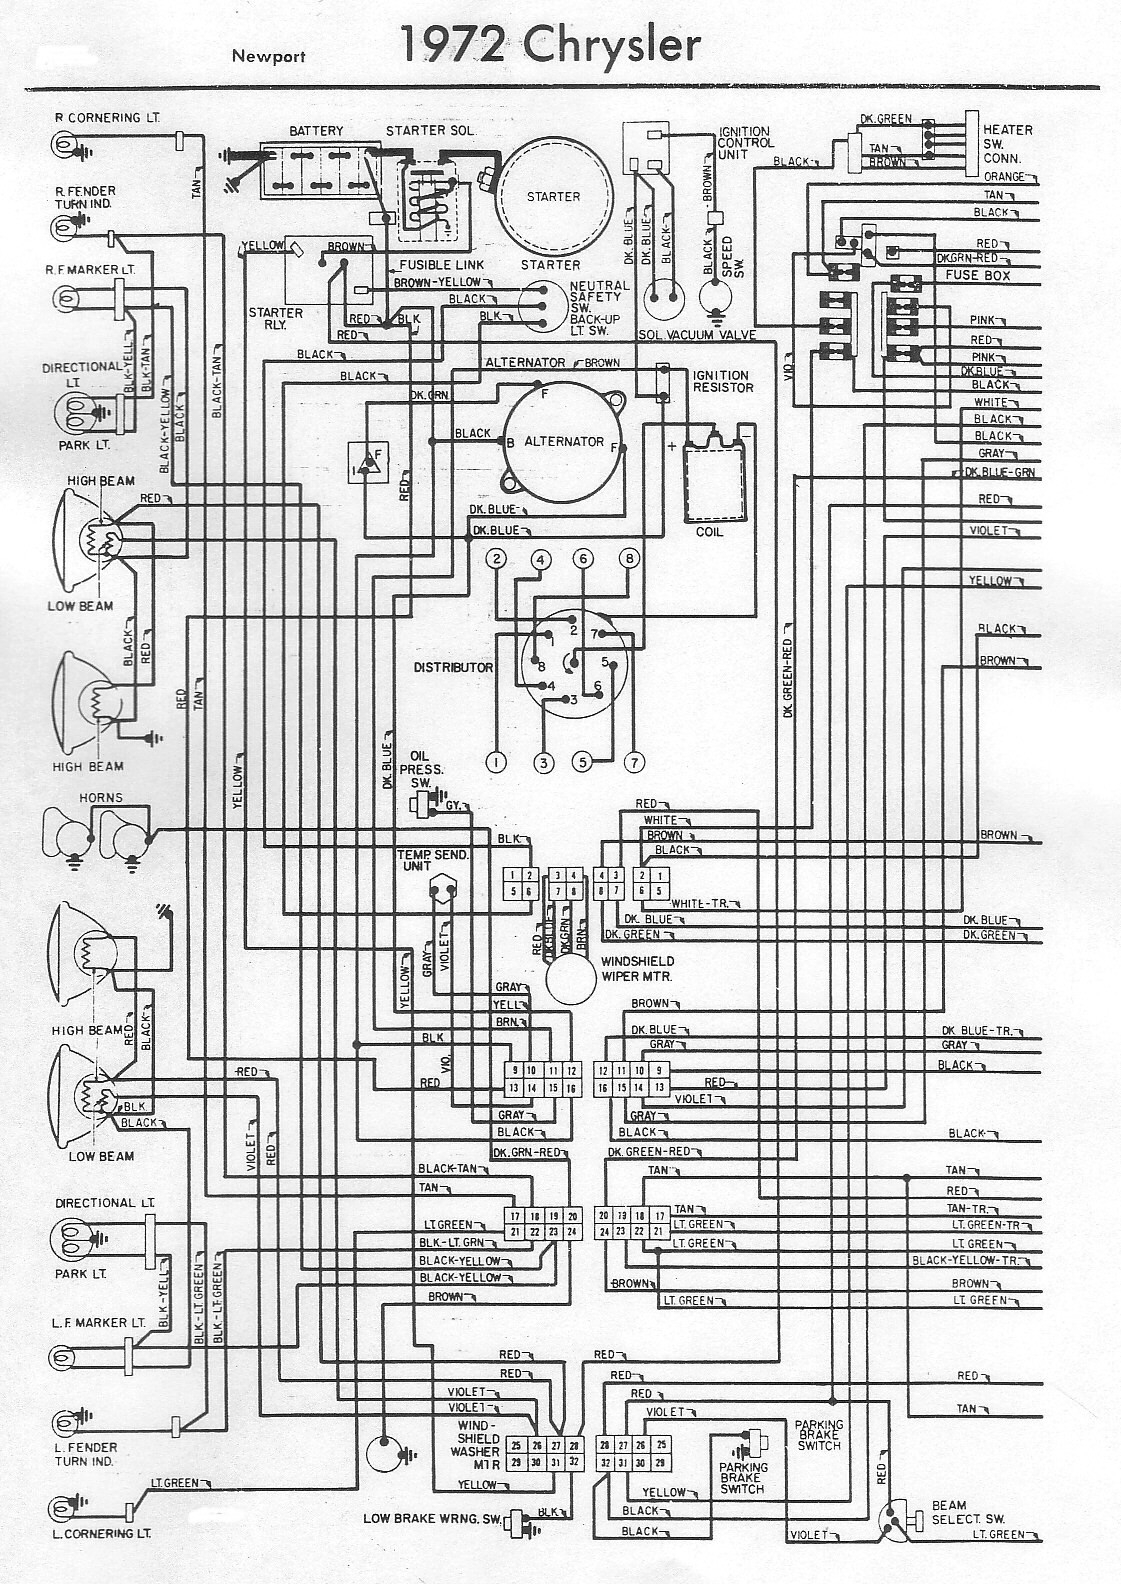 medium resolution of 1966 chrysler 300 wiring diagram trusted wiring diagrams u2022 rh sivamuni com 2008 chrysler 300 ignition